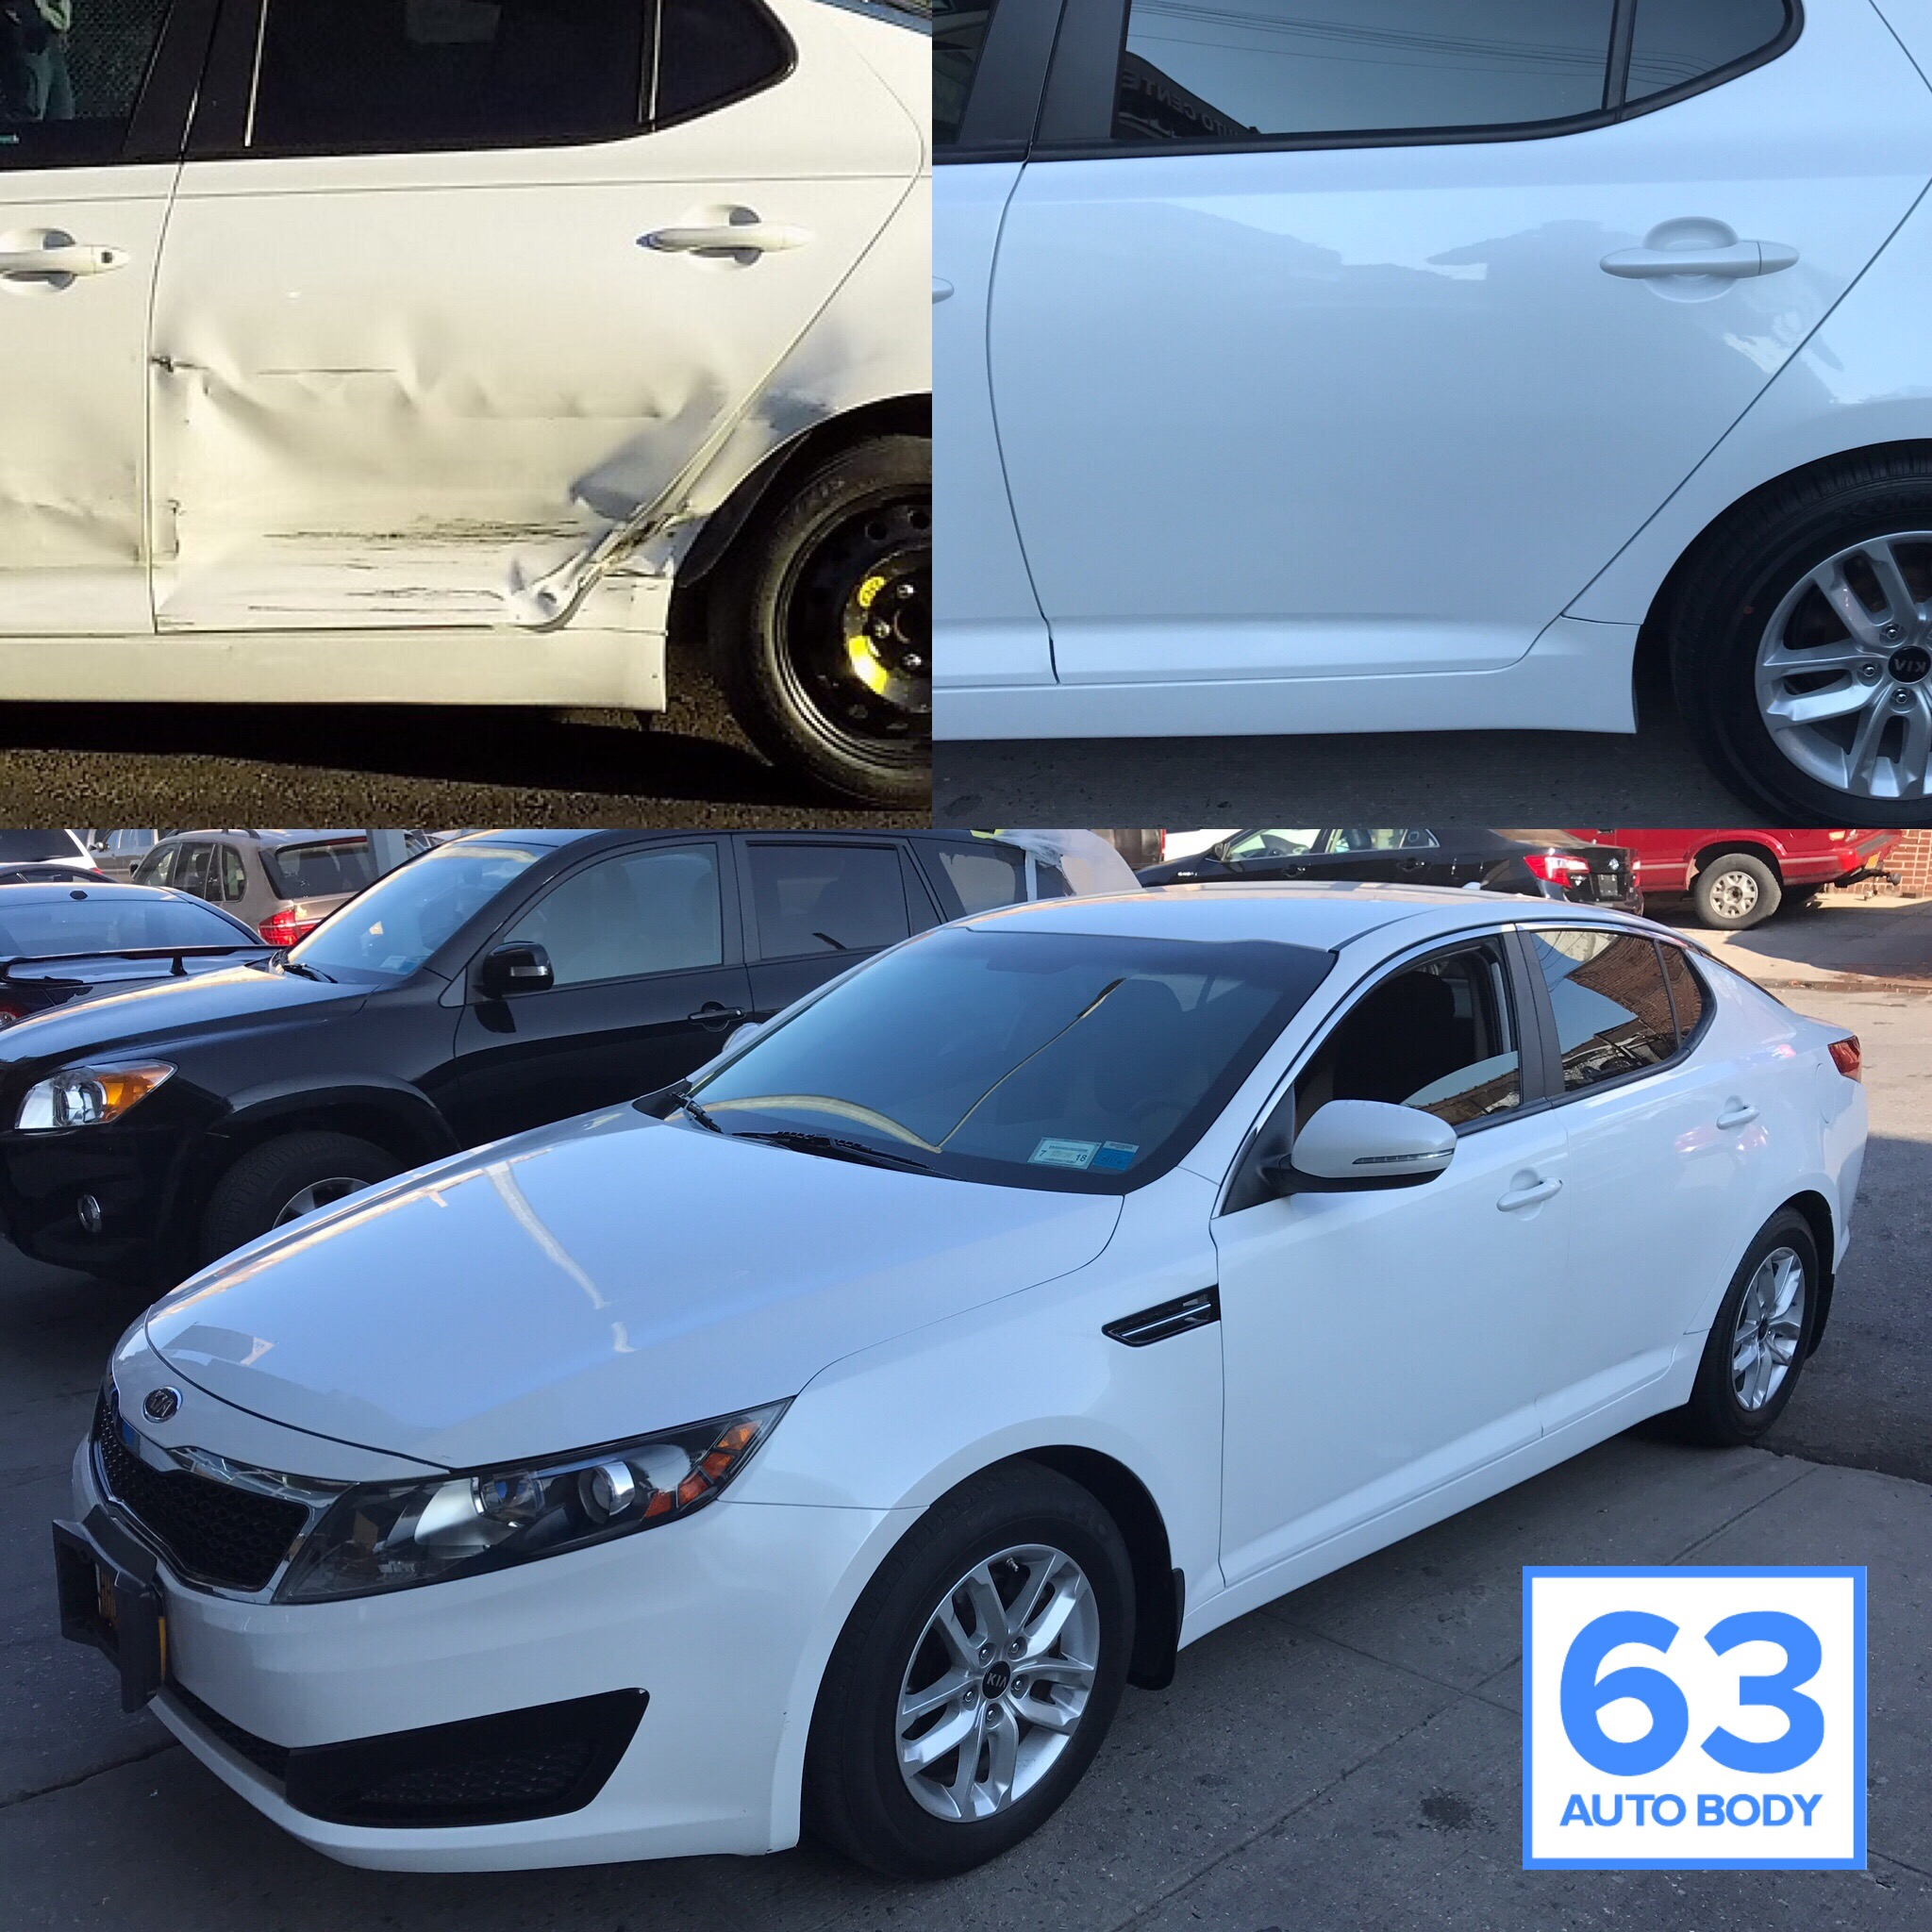 2011 Kia Optima.JPEG